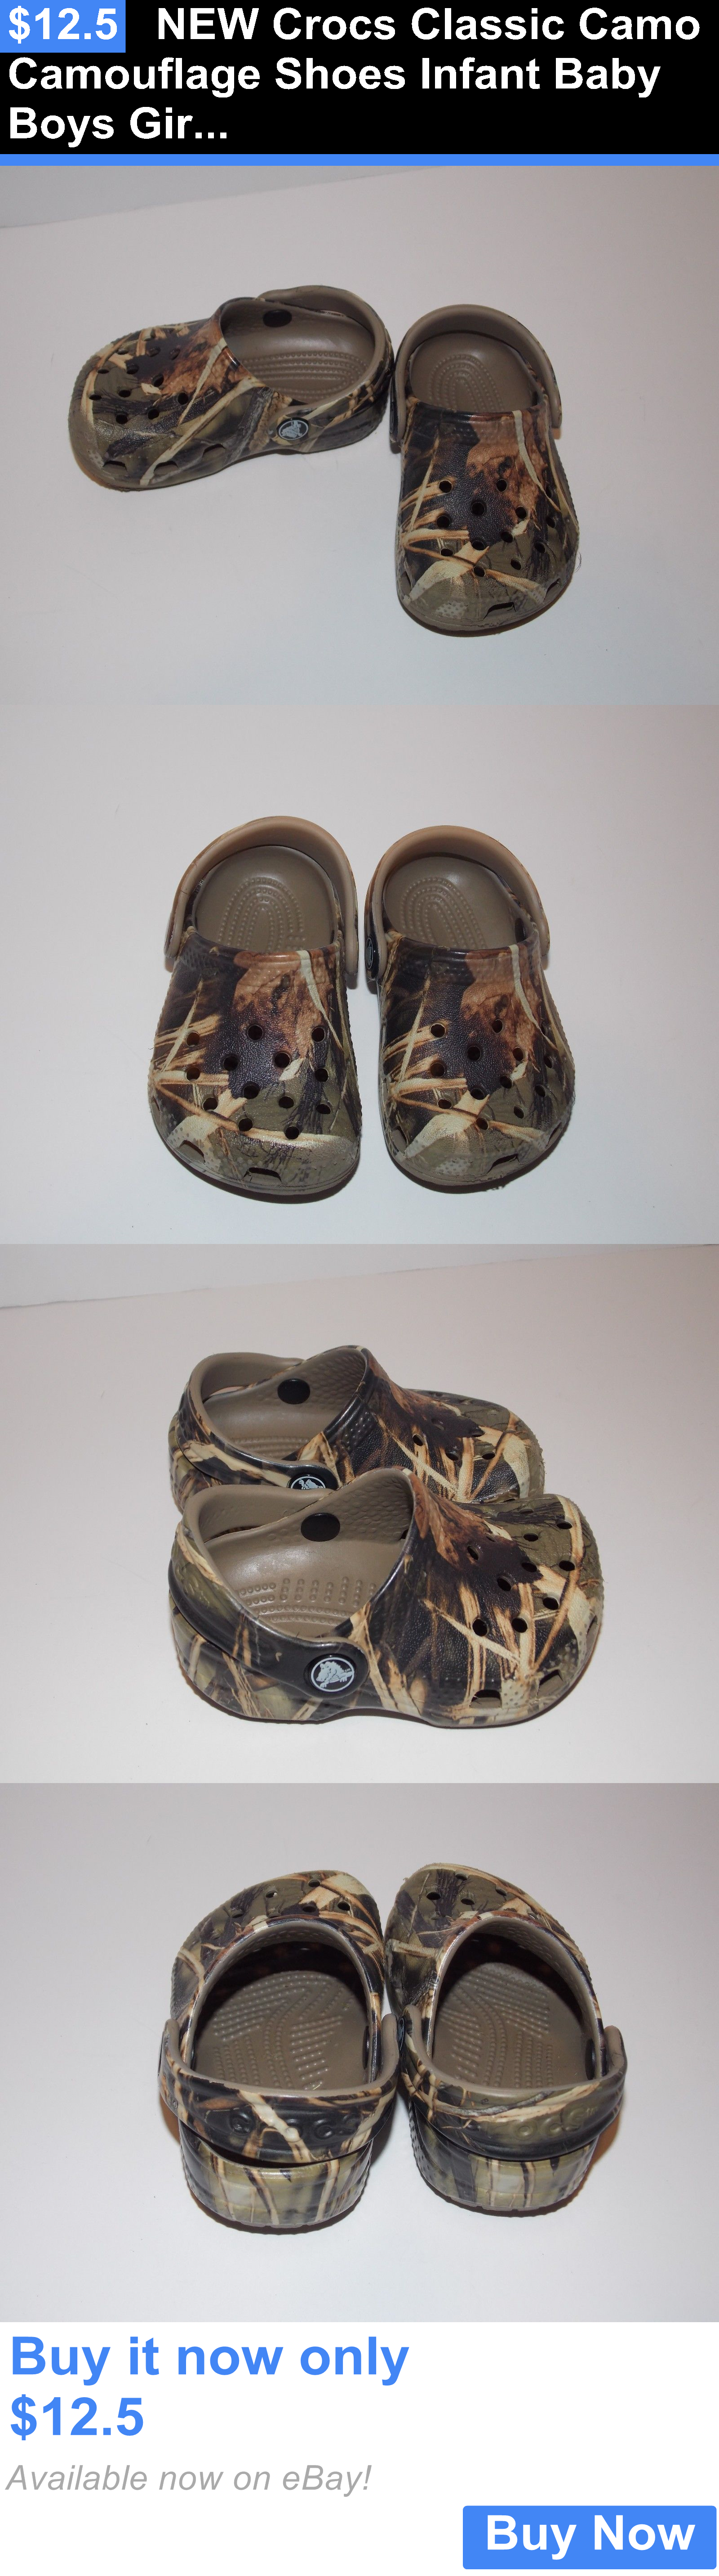 Baby Boy Shoes New Crocs Classic Camo Camouflage Shoes Infant Baby